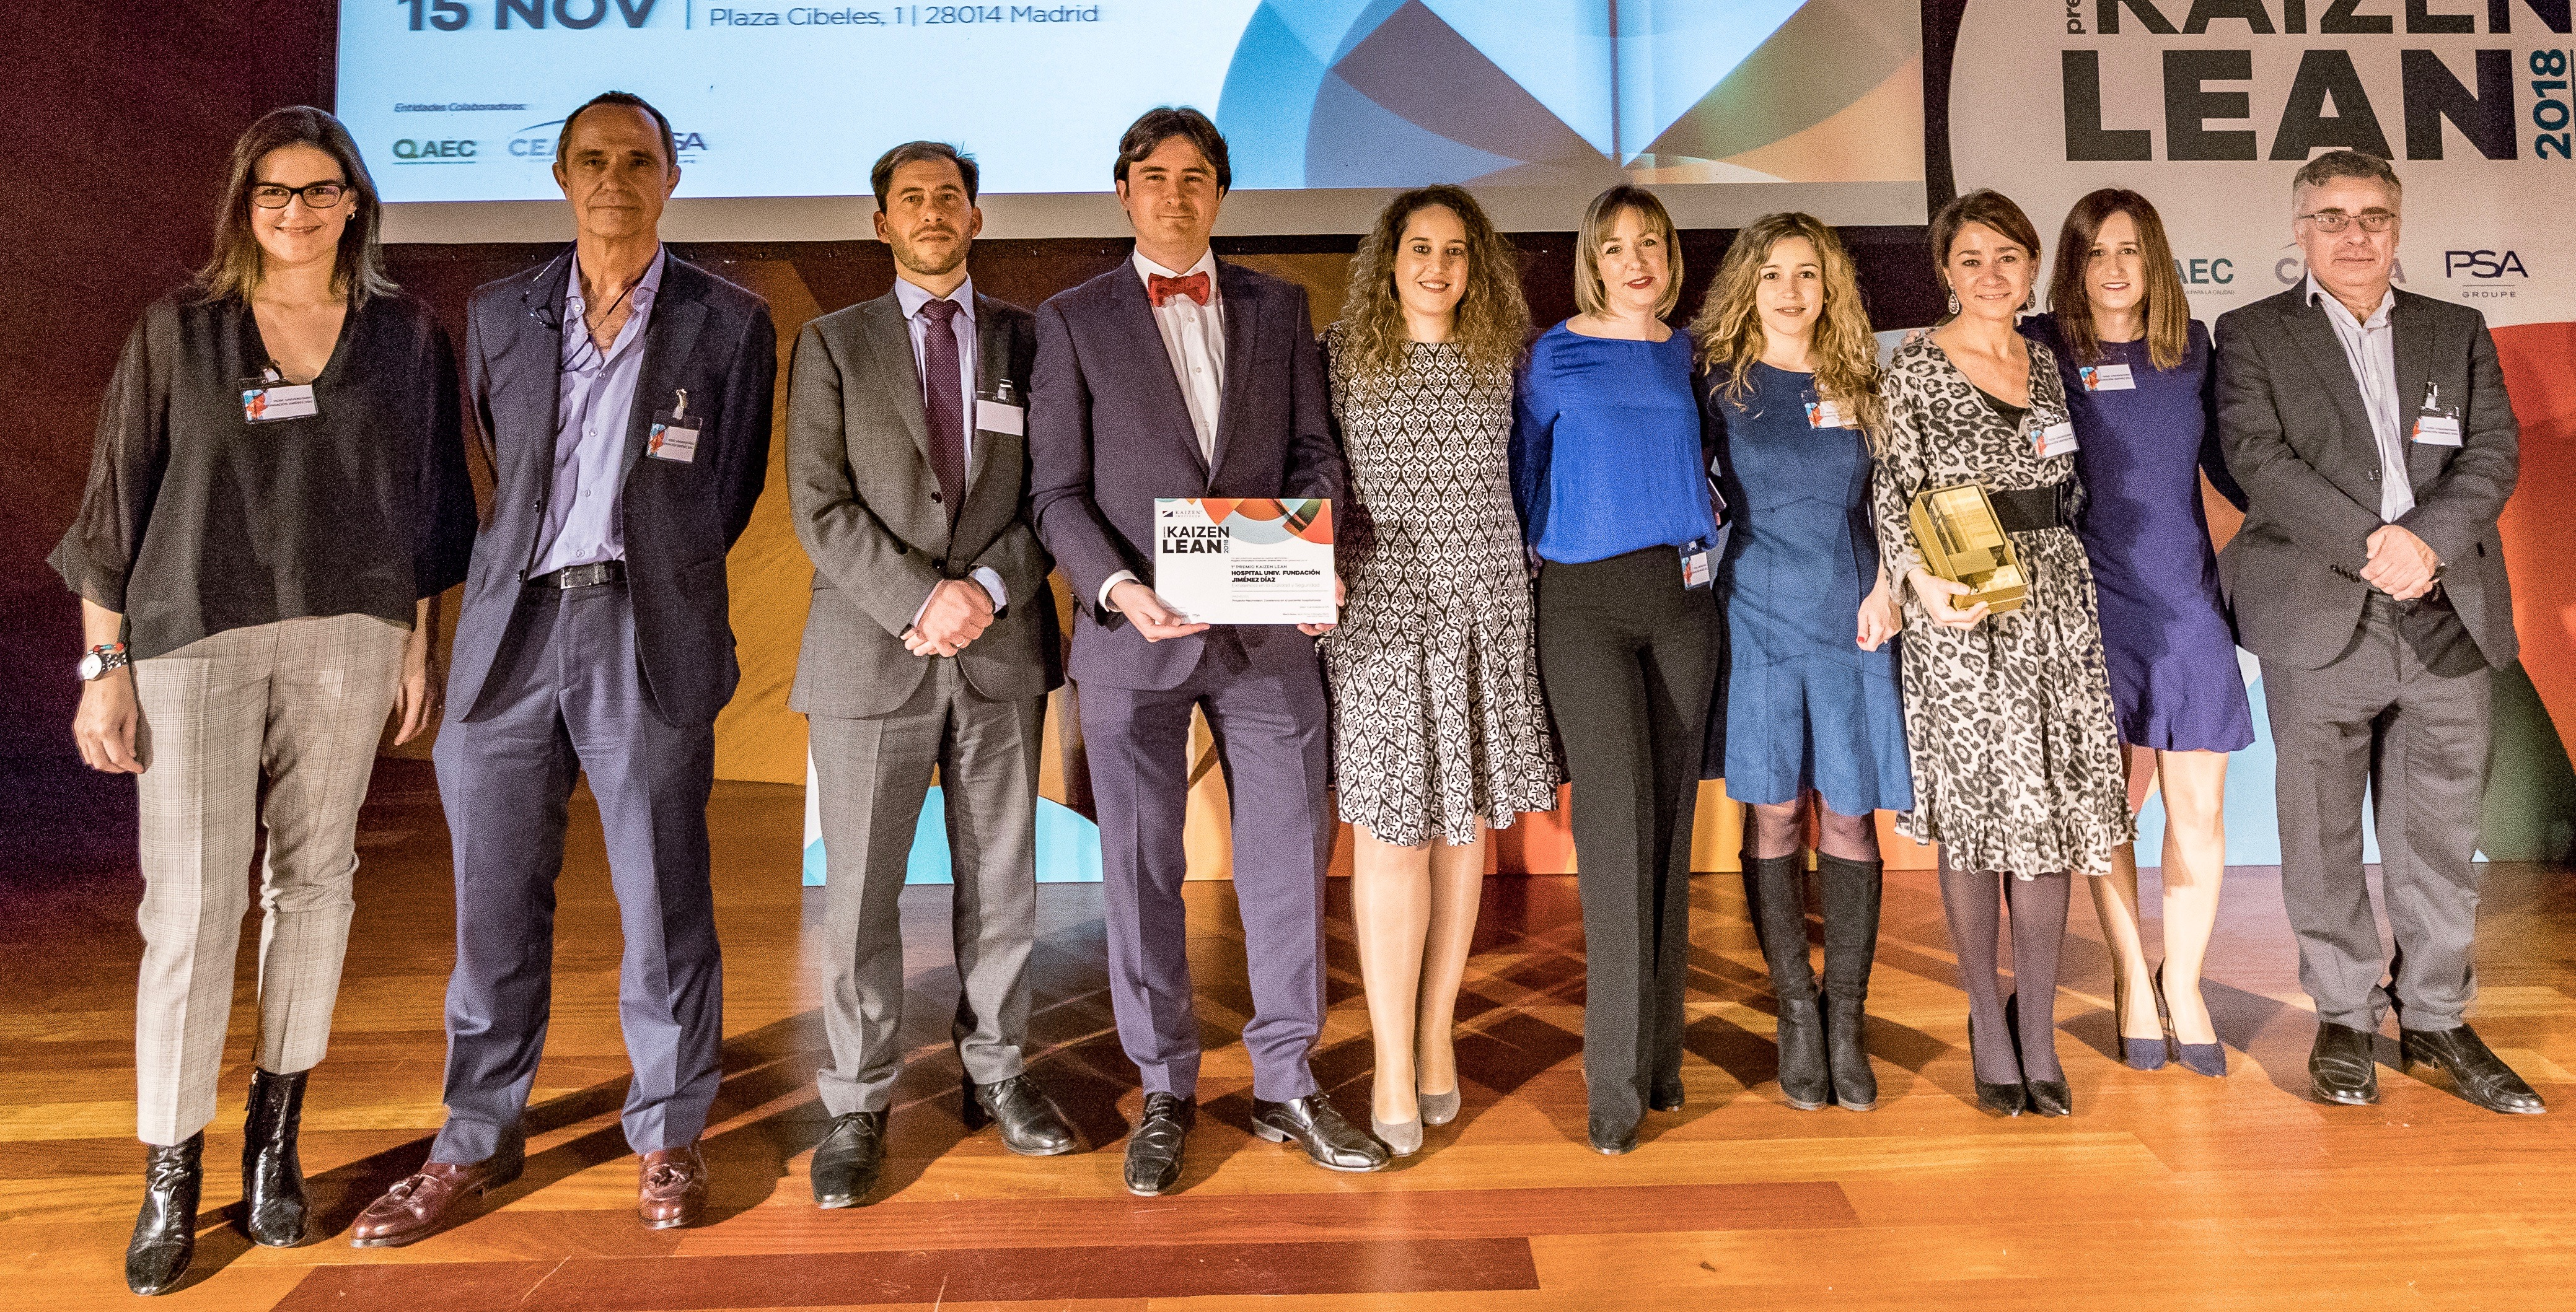 Kaizen Institute Spain awarded Hospital Universitario Fundación Jiménez Díaz with the Premio KAIZEN™ Lean España, Category: Excellence in Quality and Security